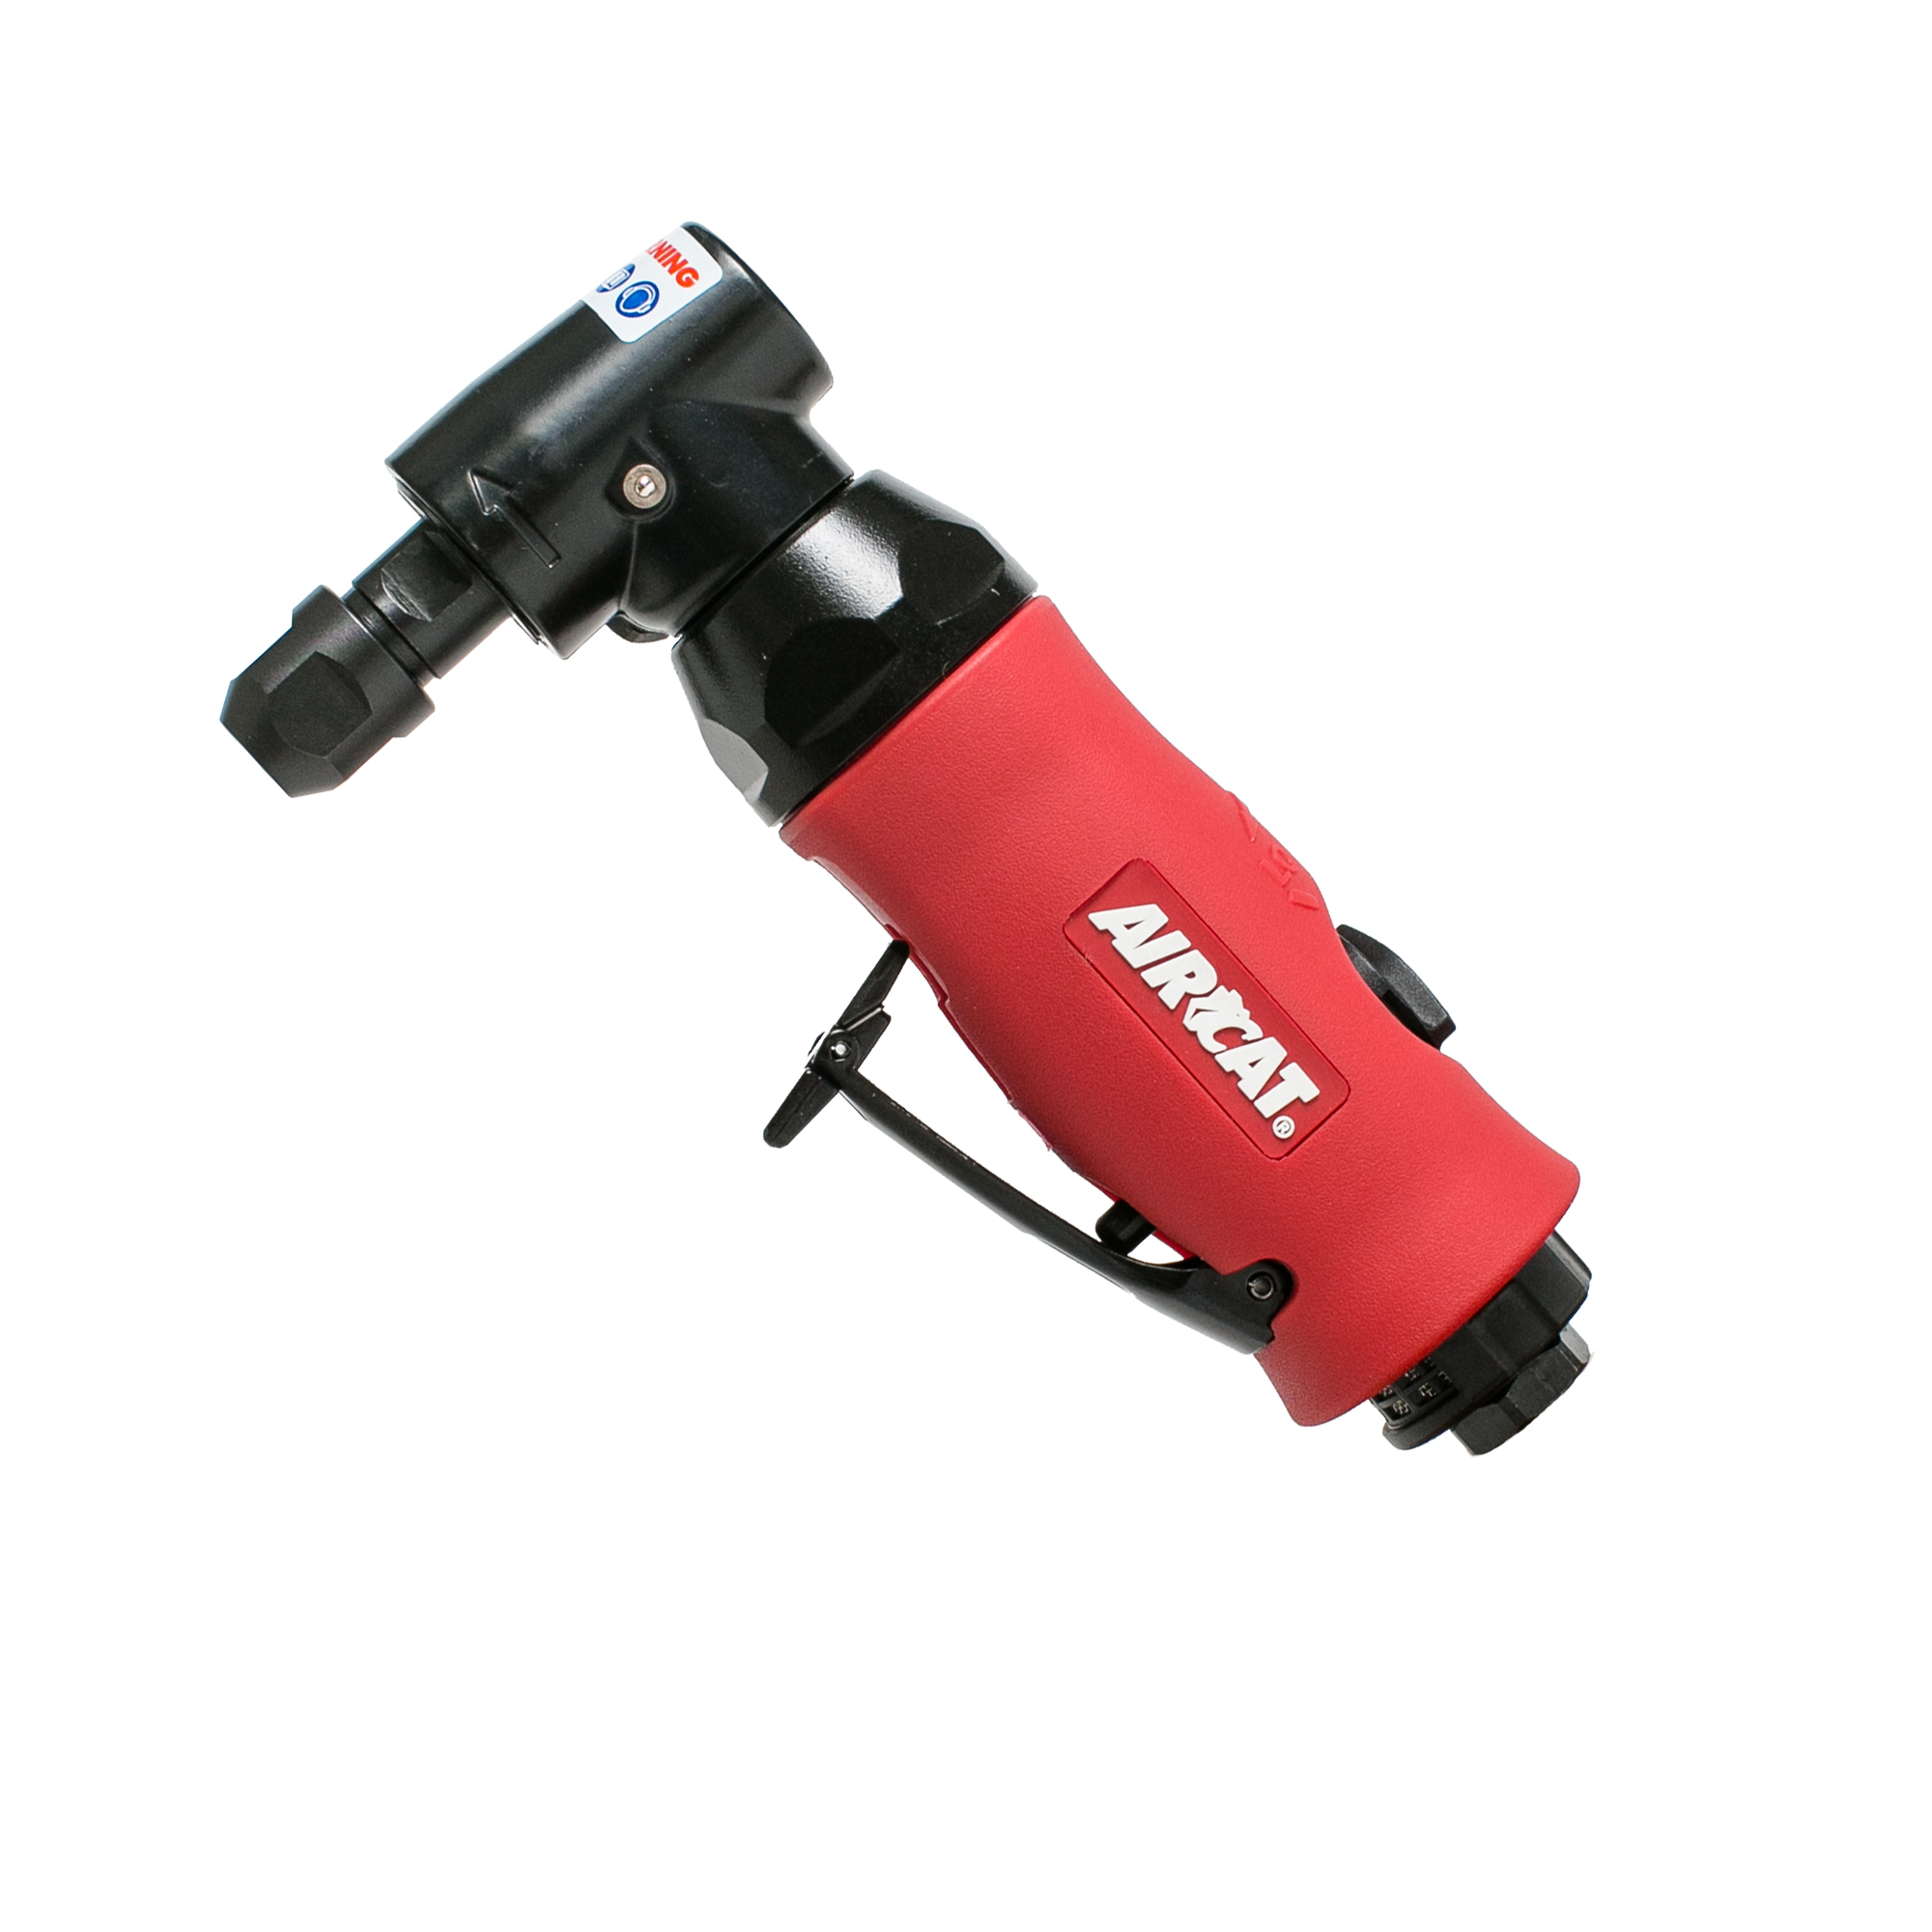 .7 HP Angle Die Grinder With Spindle Lock by AirCat